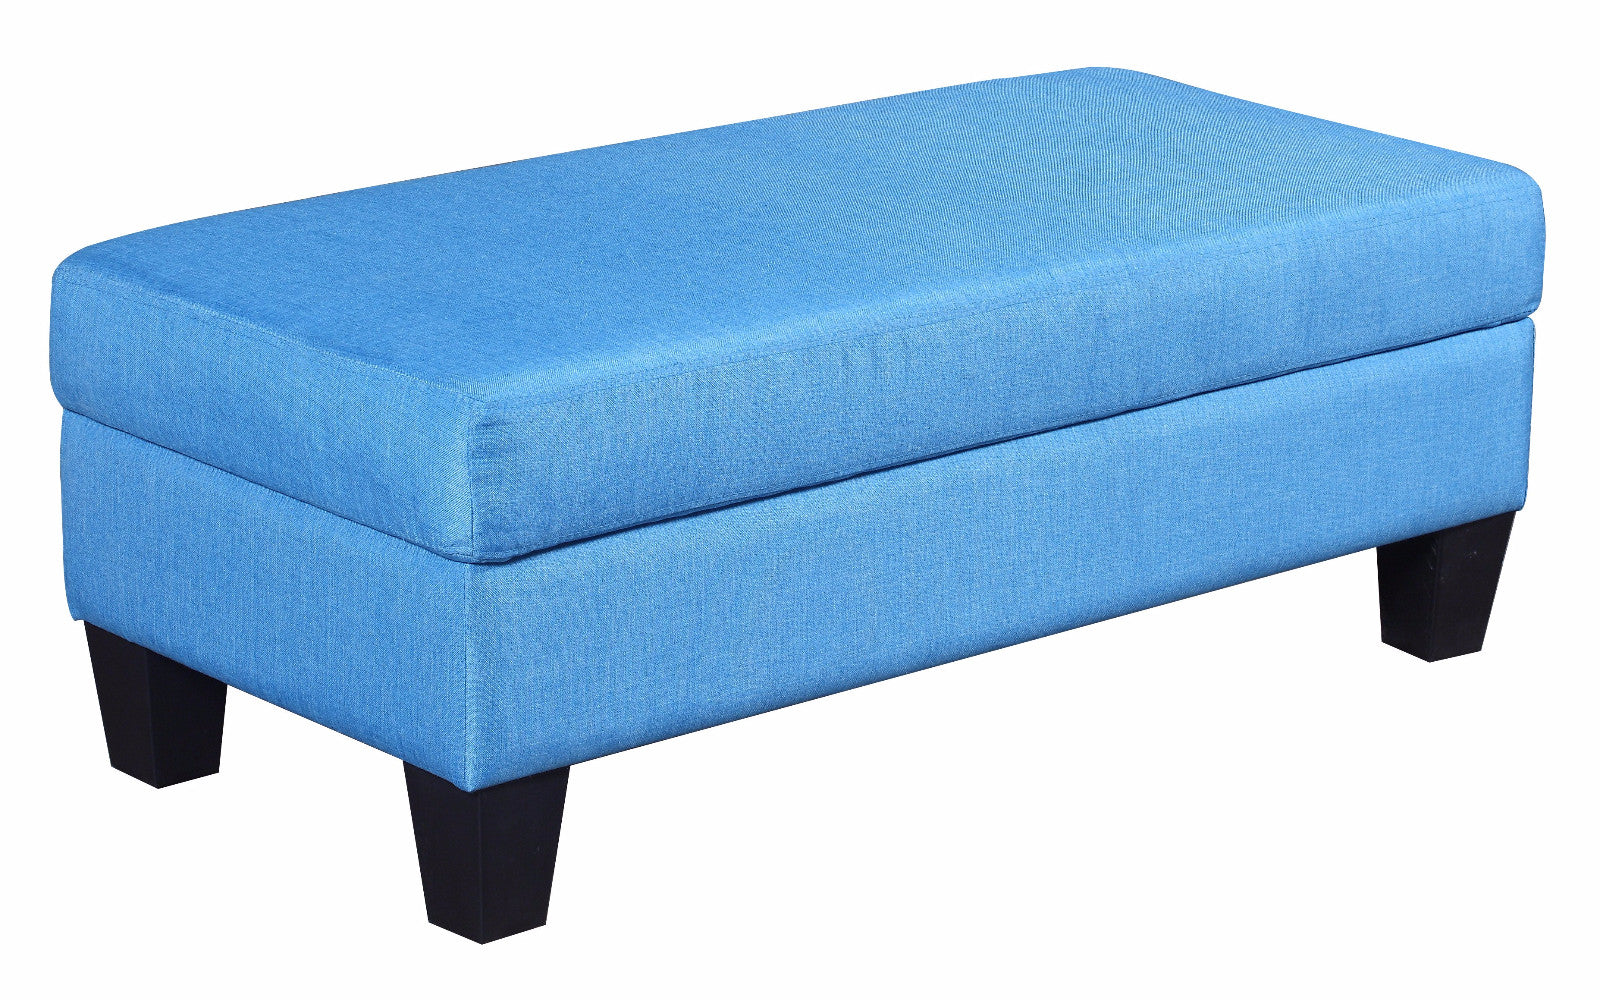 turquoise fabric blue footstool ikea sofa upholstered seat bins ottoman with organizer tray leather small bench cube trunk storage most modern round closet